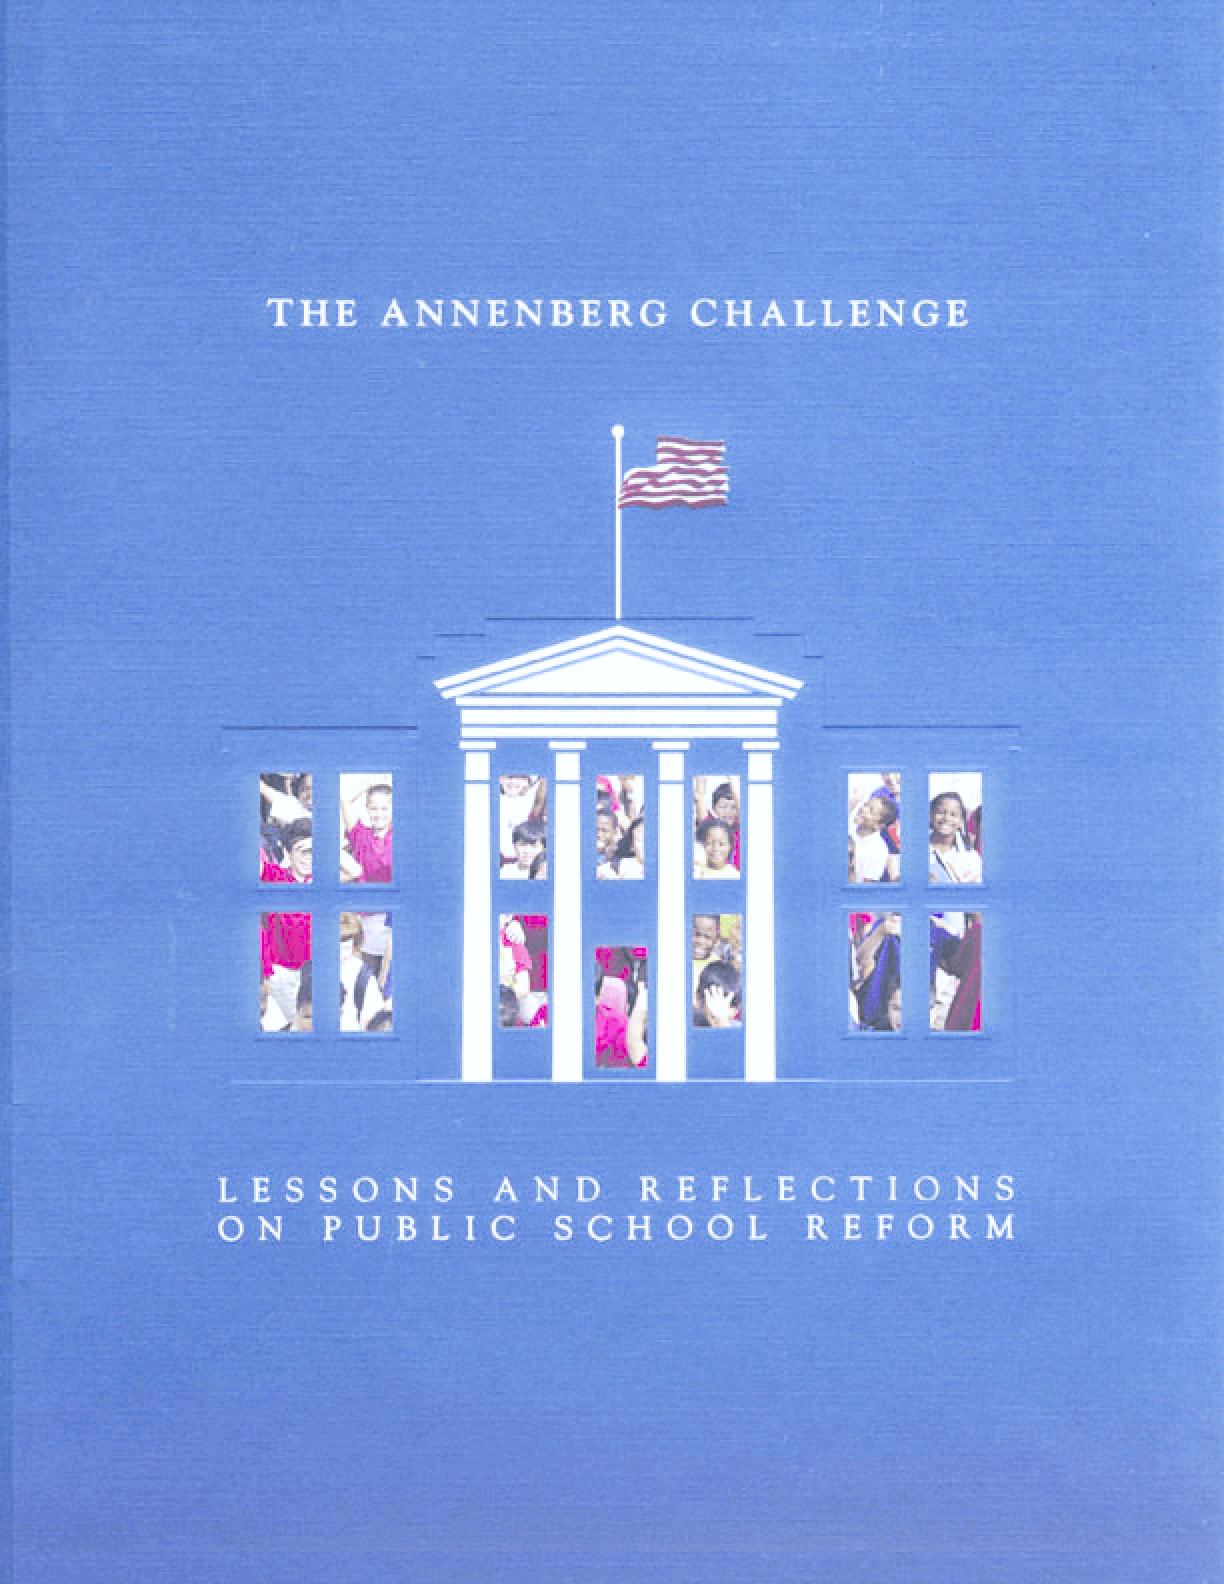 The Annenberg Challenge: Lessons and Reflections on Public School Reform